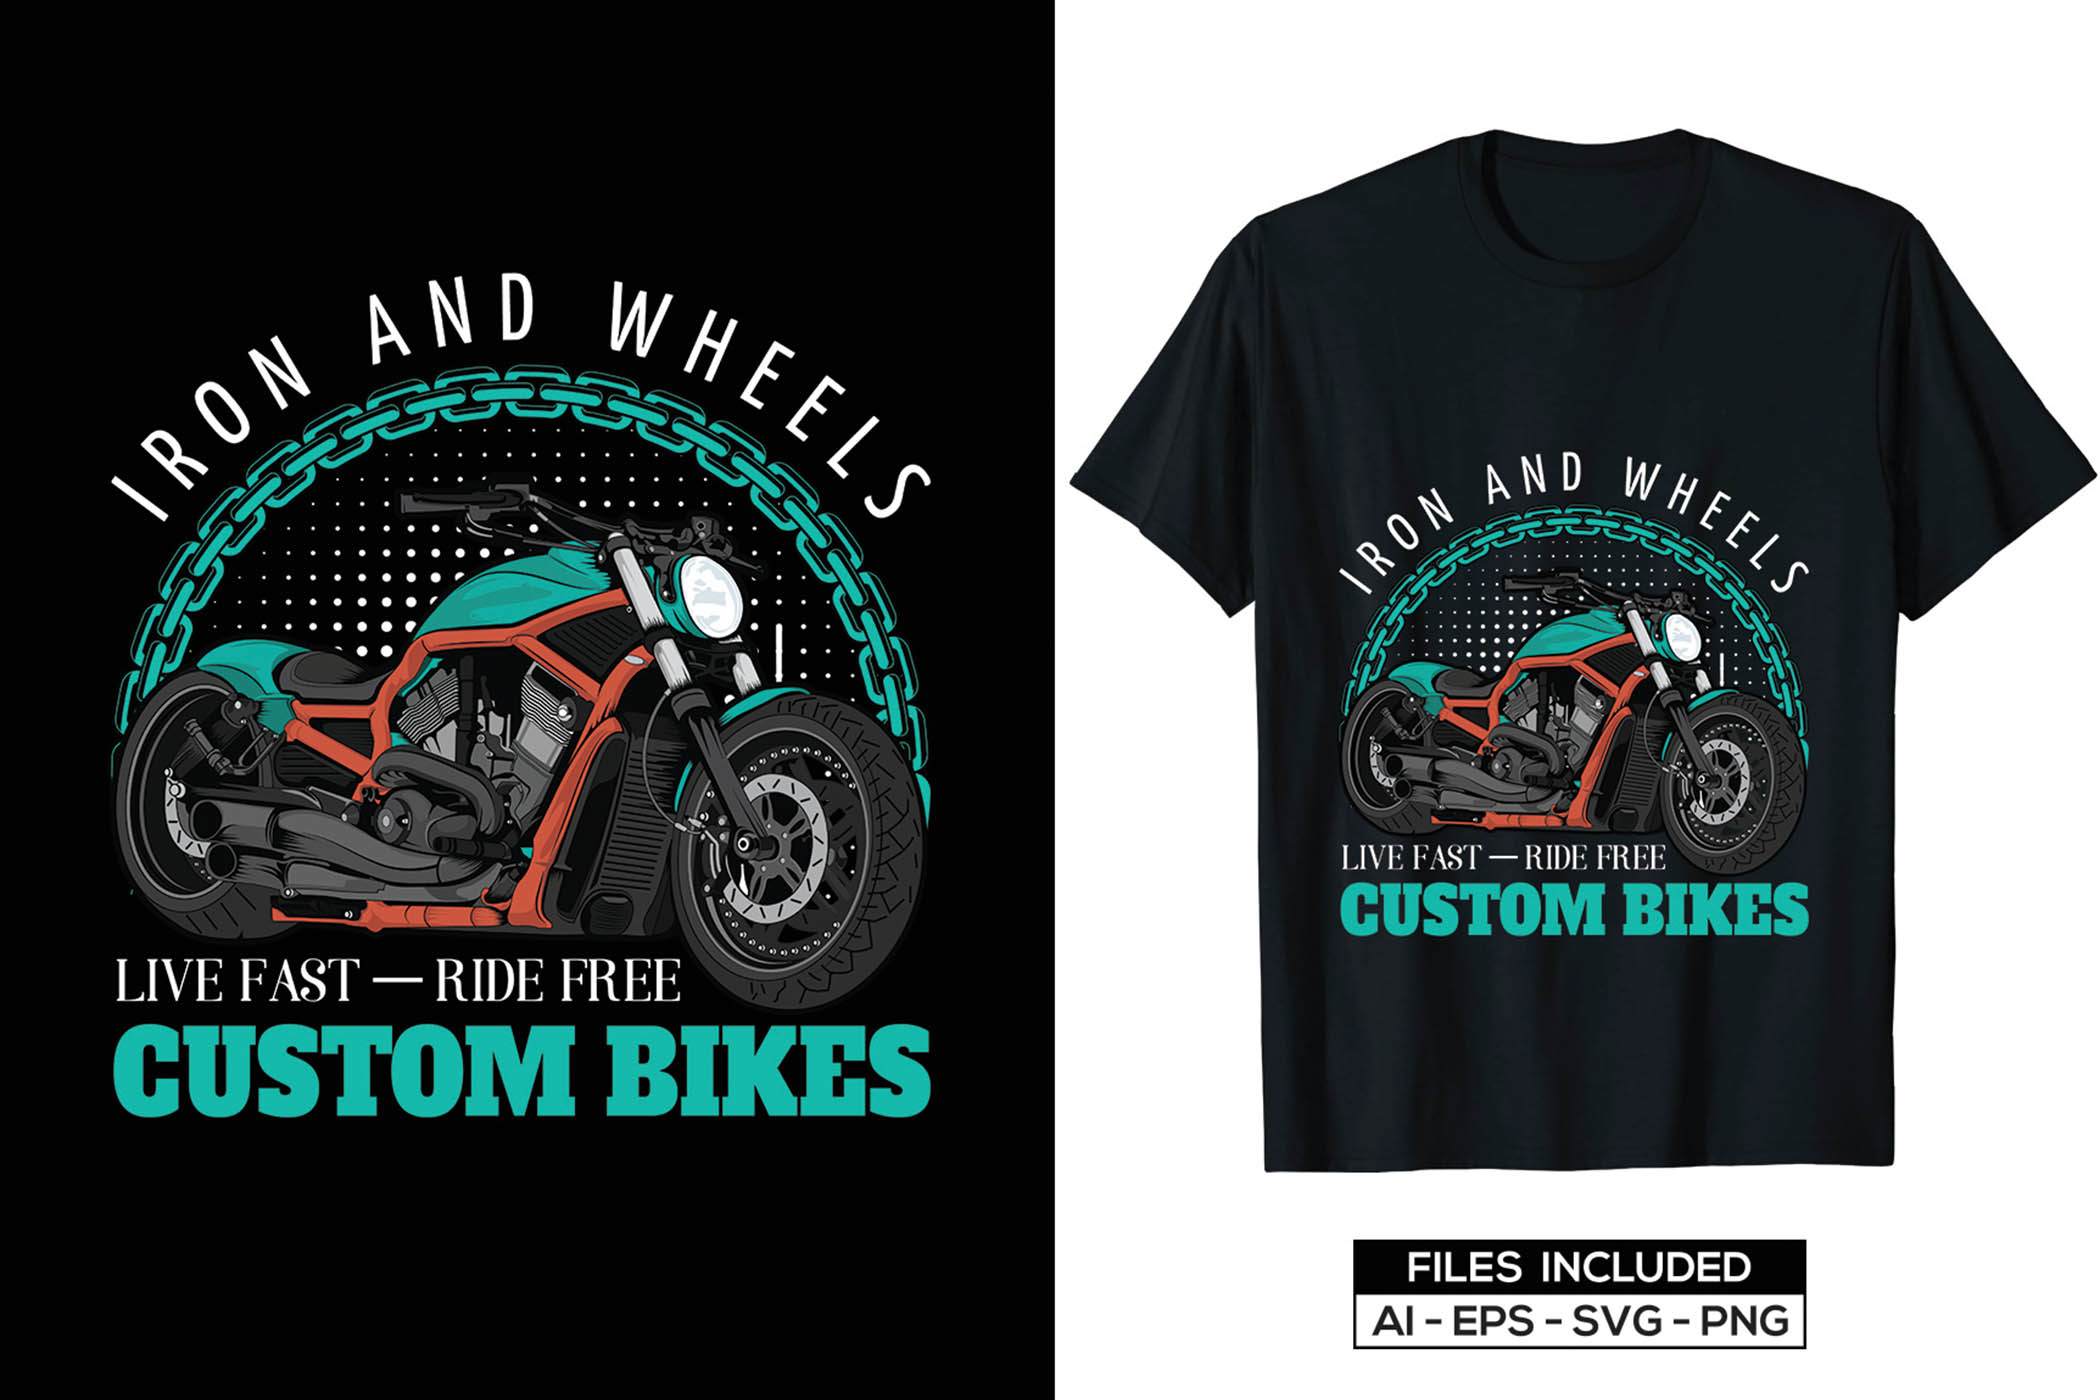 Black t-shirts with laconic graphic of green motorcycle.